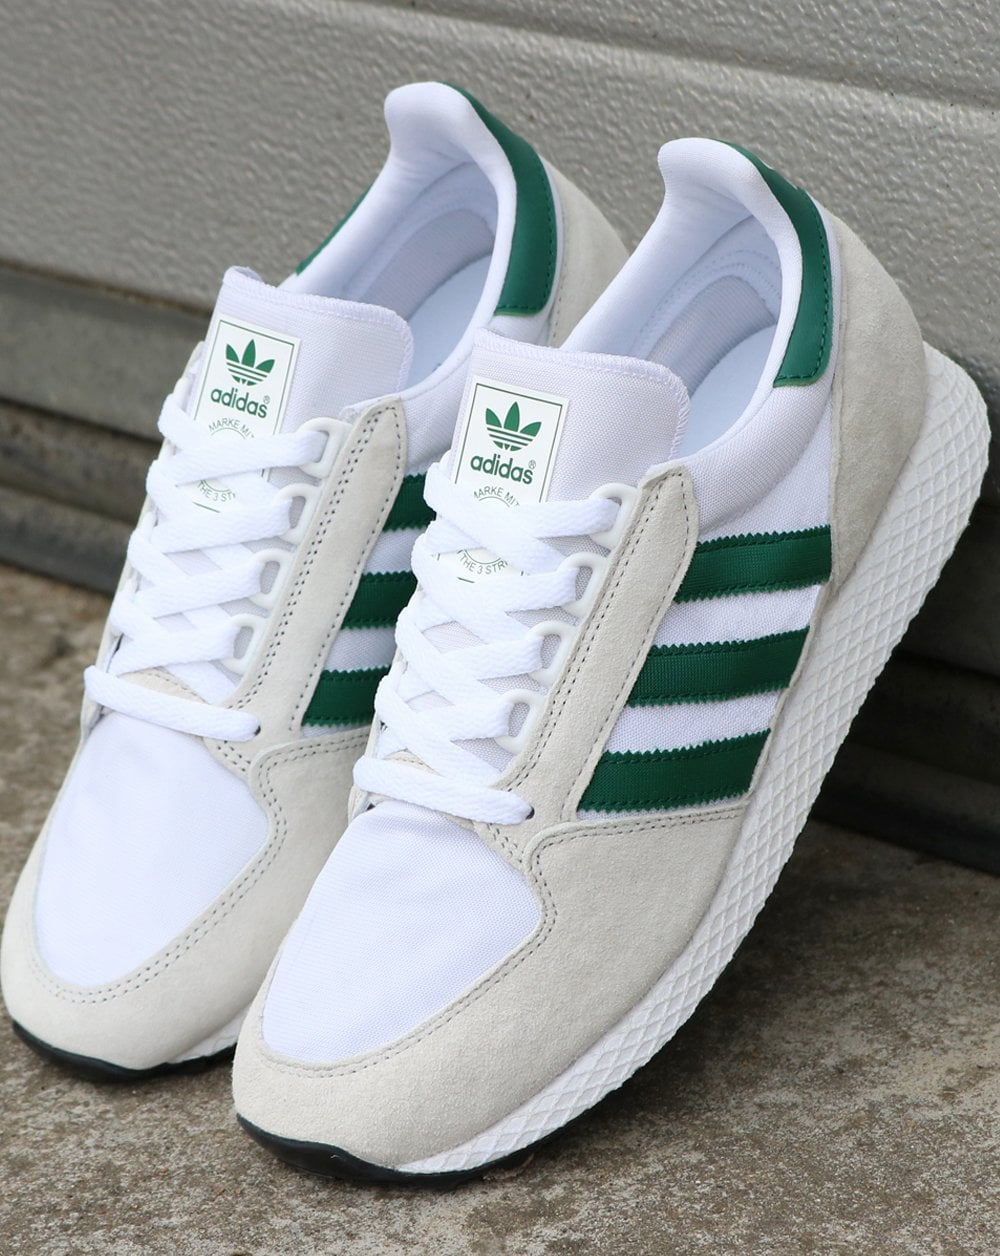 low priced 19fbf 700ff adidas Trainers Adidas Forest Grove Trainers Pure WhiteGreen